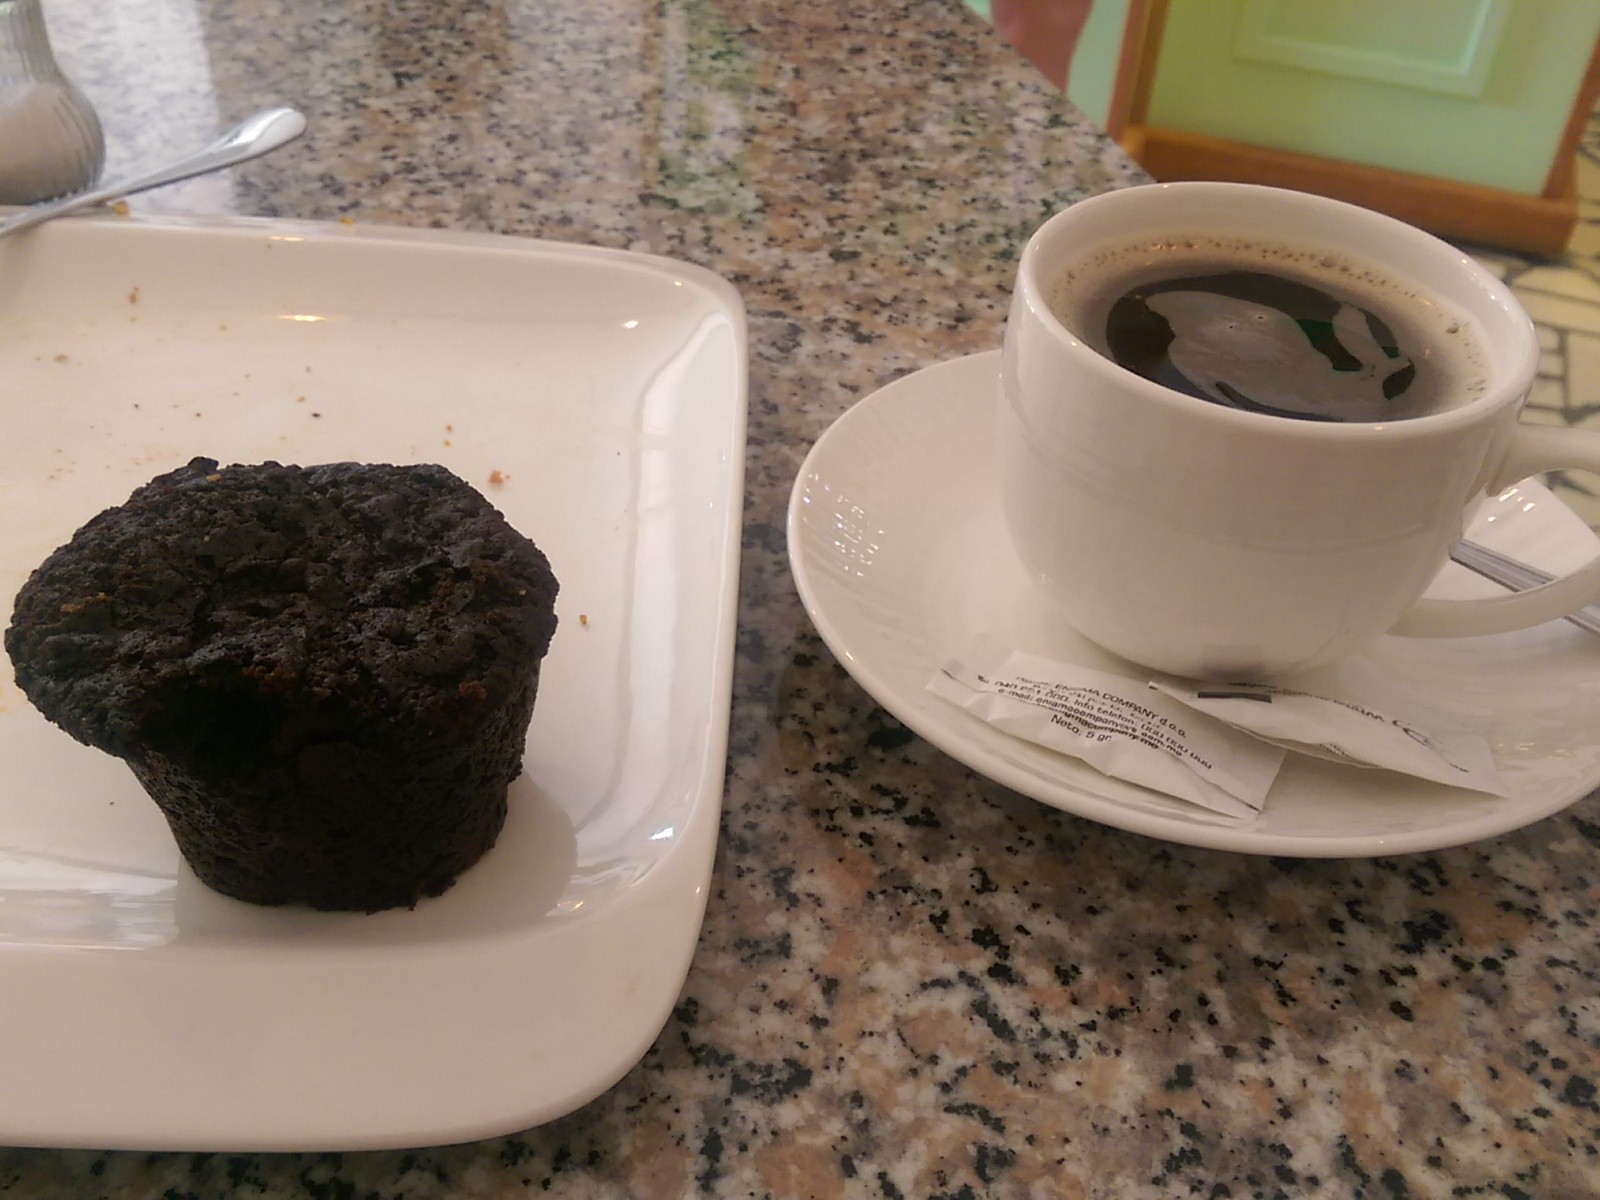 A chocolate muffin on a white plate beside a cup of something that looks like coffee but isn't